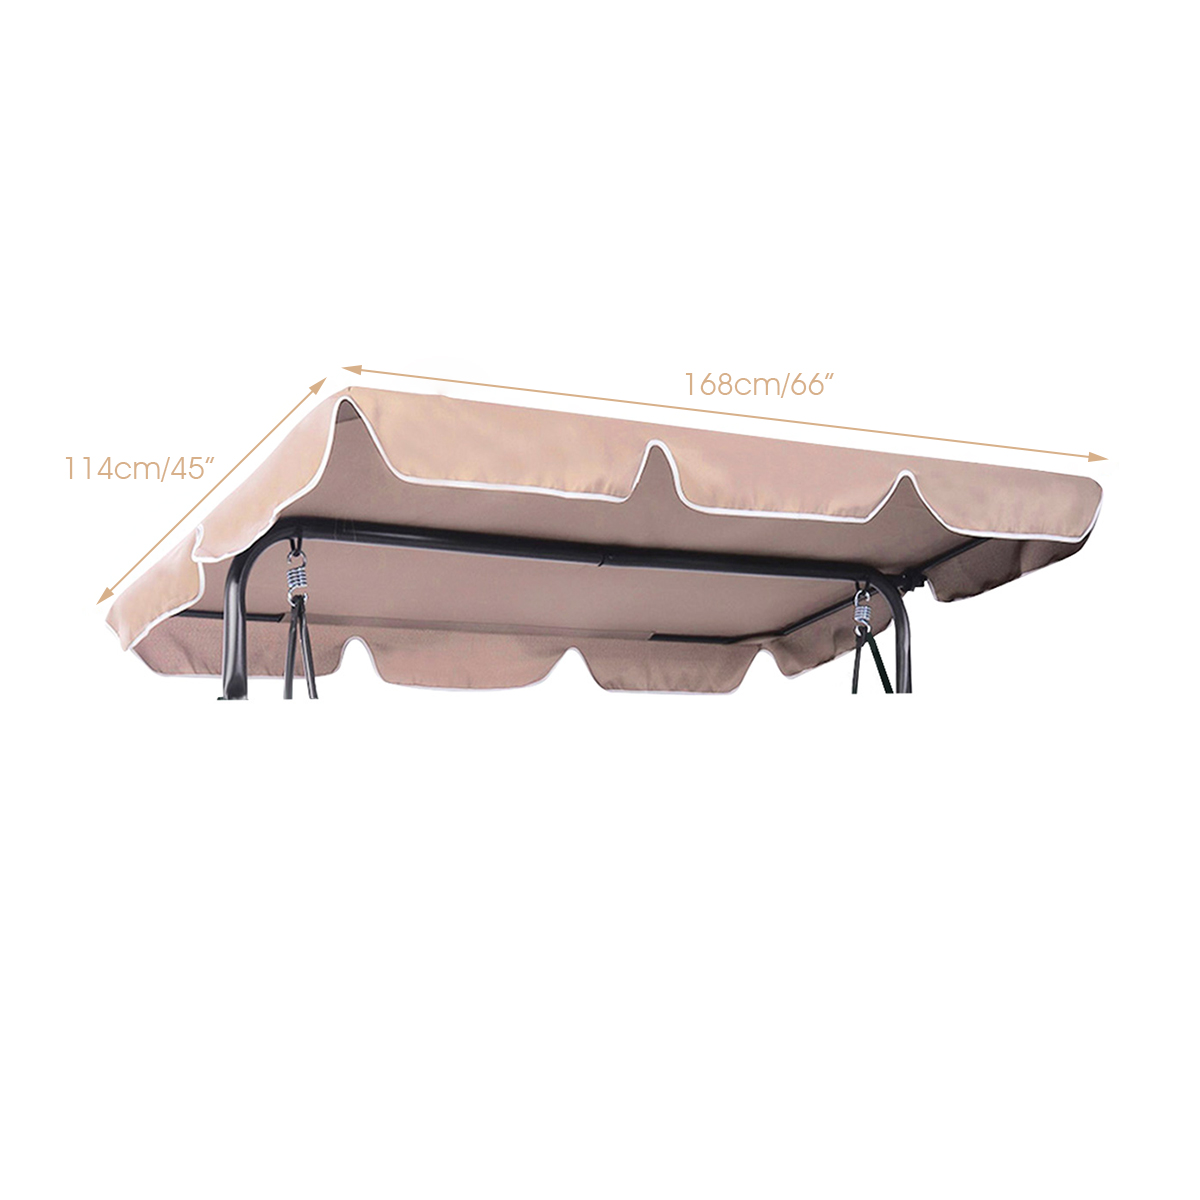 Swing-Top-Cover-Canopy-Replacement-Porch-Patio-Outdoor-66-034-x45-034-75-034-x52-034-77-034-x43-034 thumbnail 3